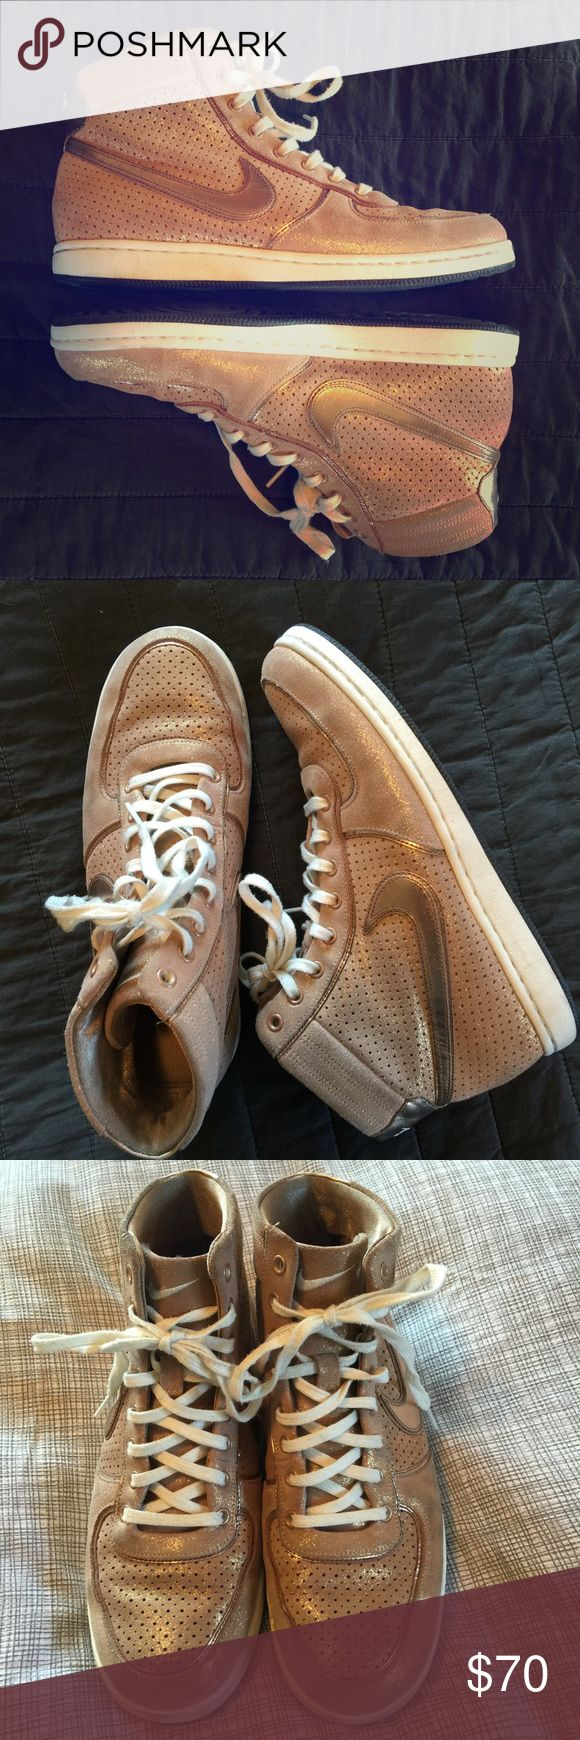 Rose Gold Nike High Top Sneakers 9! These shoes are just incredible. Nike rose gold high tops with a lot of shimmer! Women's size 9. In excellent preowned condition with no damage of any kind. Nike Shoes Sneakers